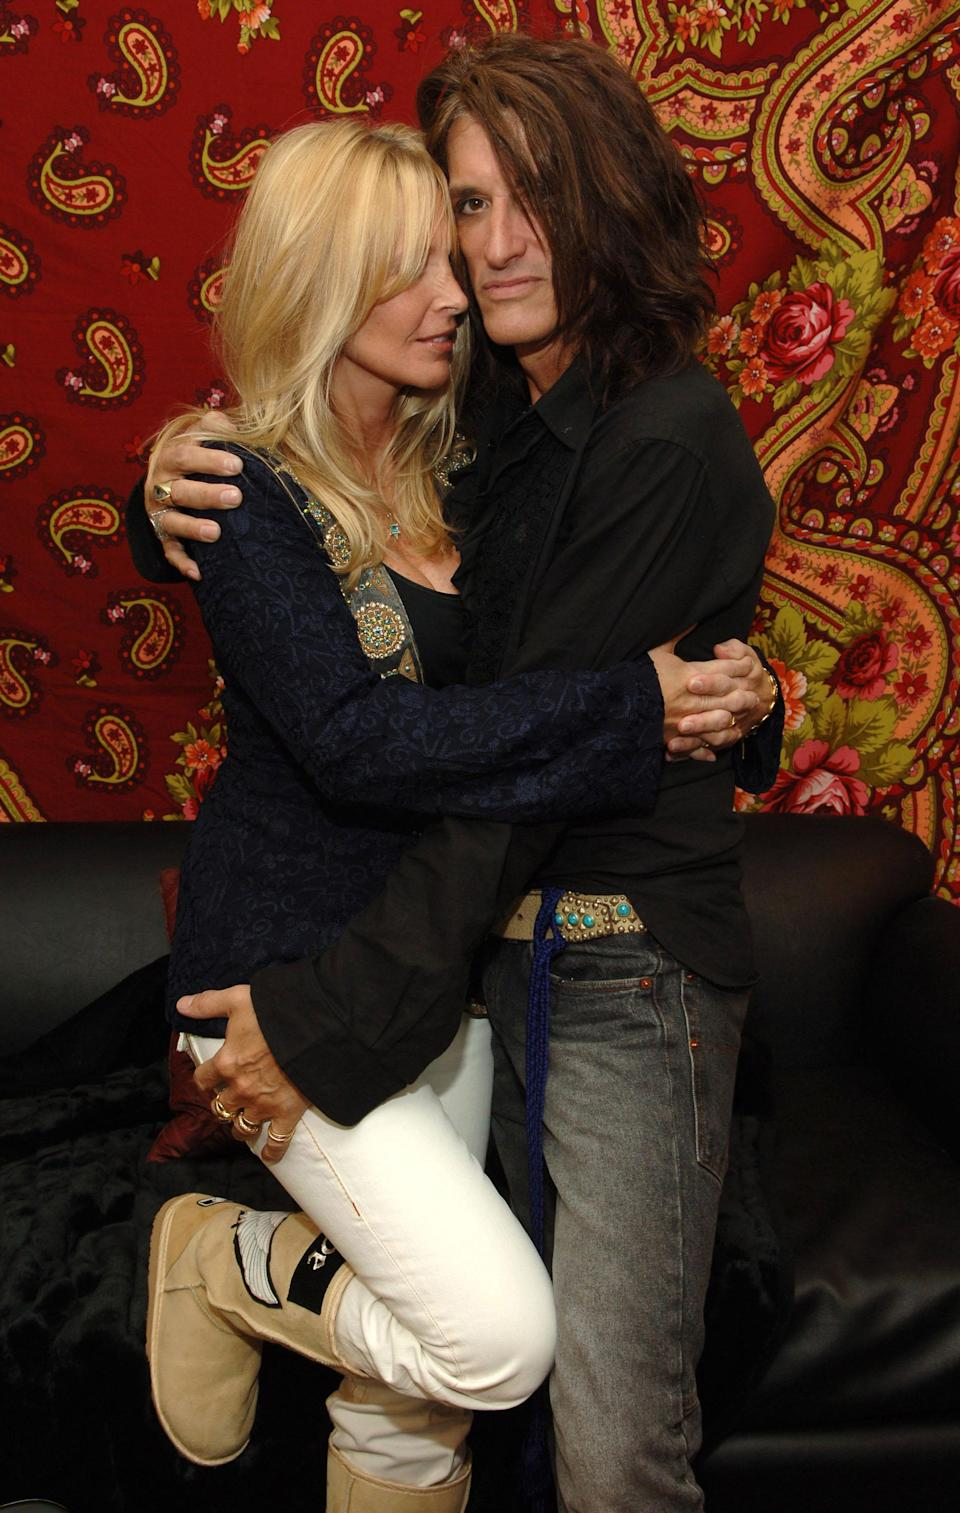 Joe and Billie Perry in 2006. (Photo: Kevin Mazur/WireImage)